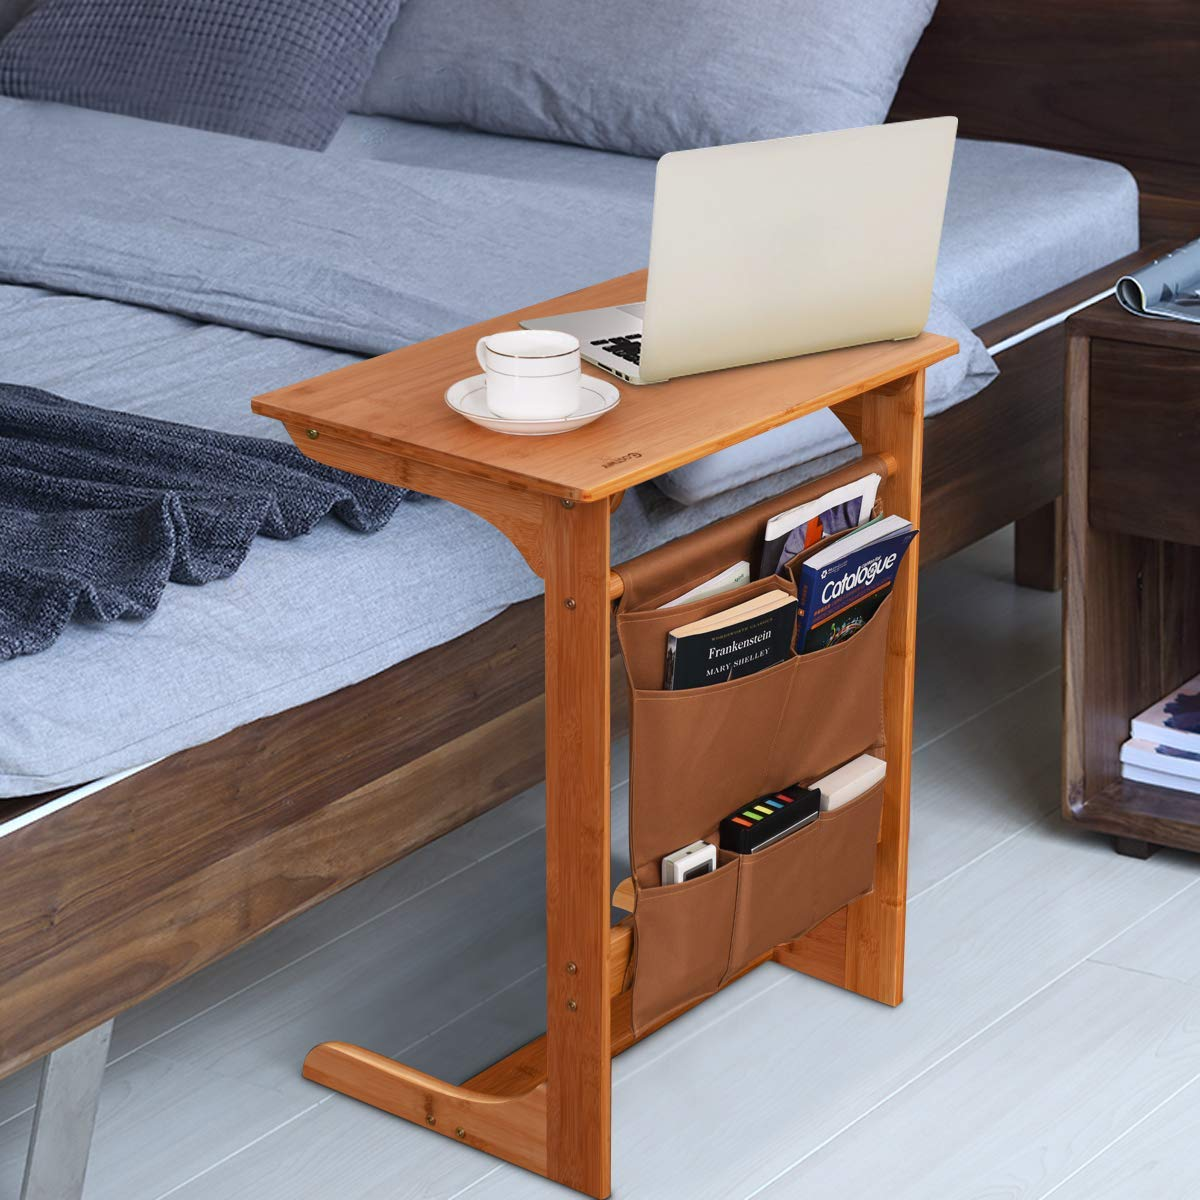 Tangkula Bamboo Sofa Side Table, TV Tray Couch Coffee Snack End Table Bed Side Table with Storage Bag, Laptop Desk Modern Furniture for Home Office